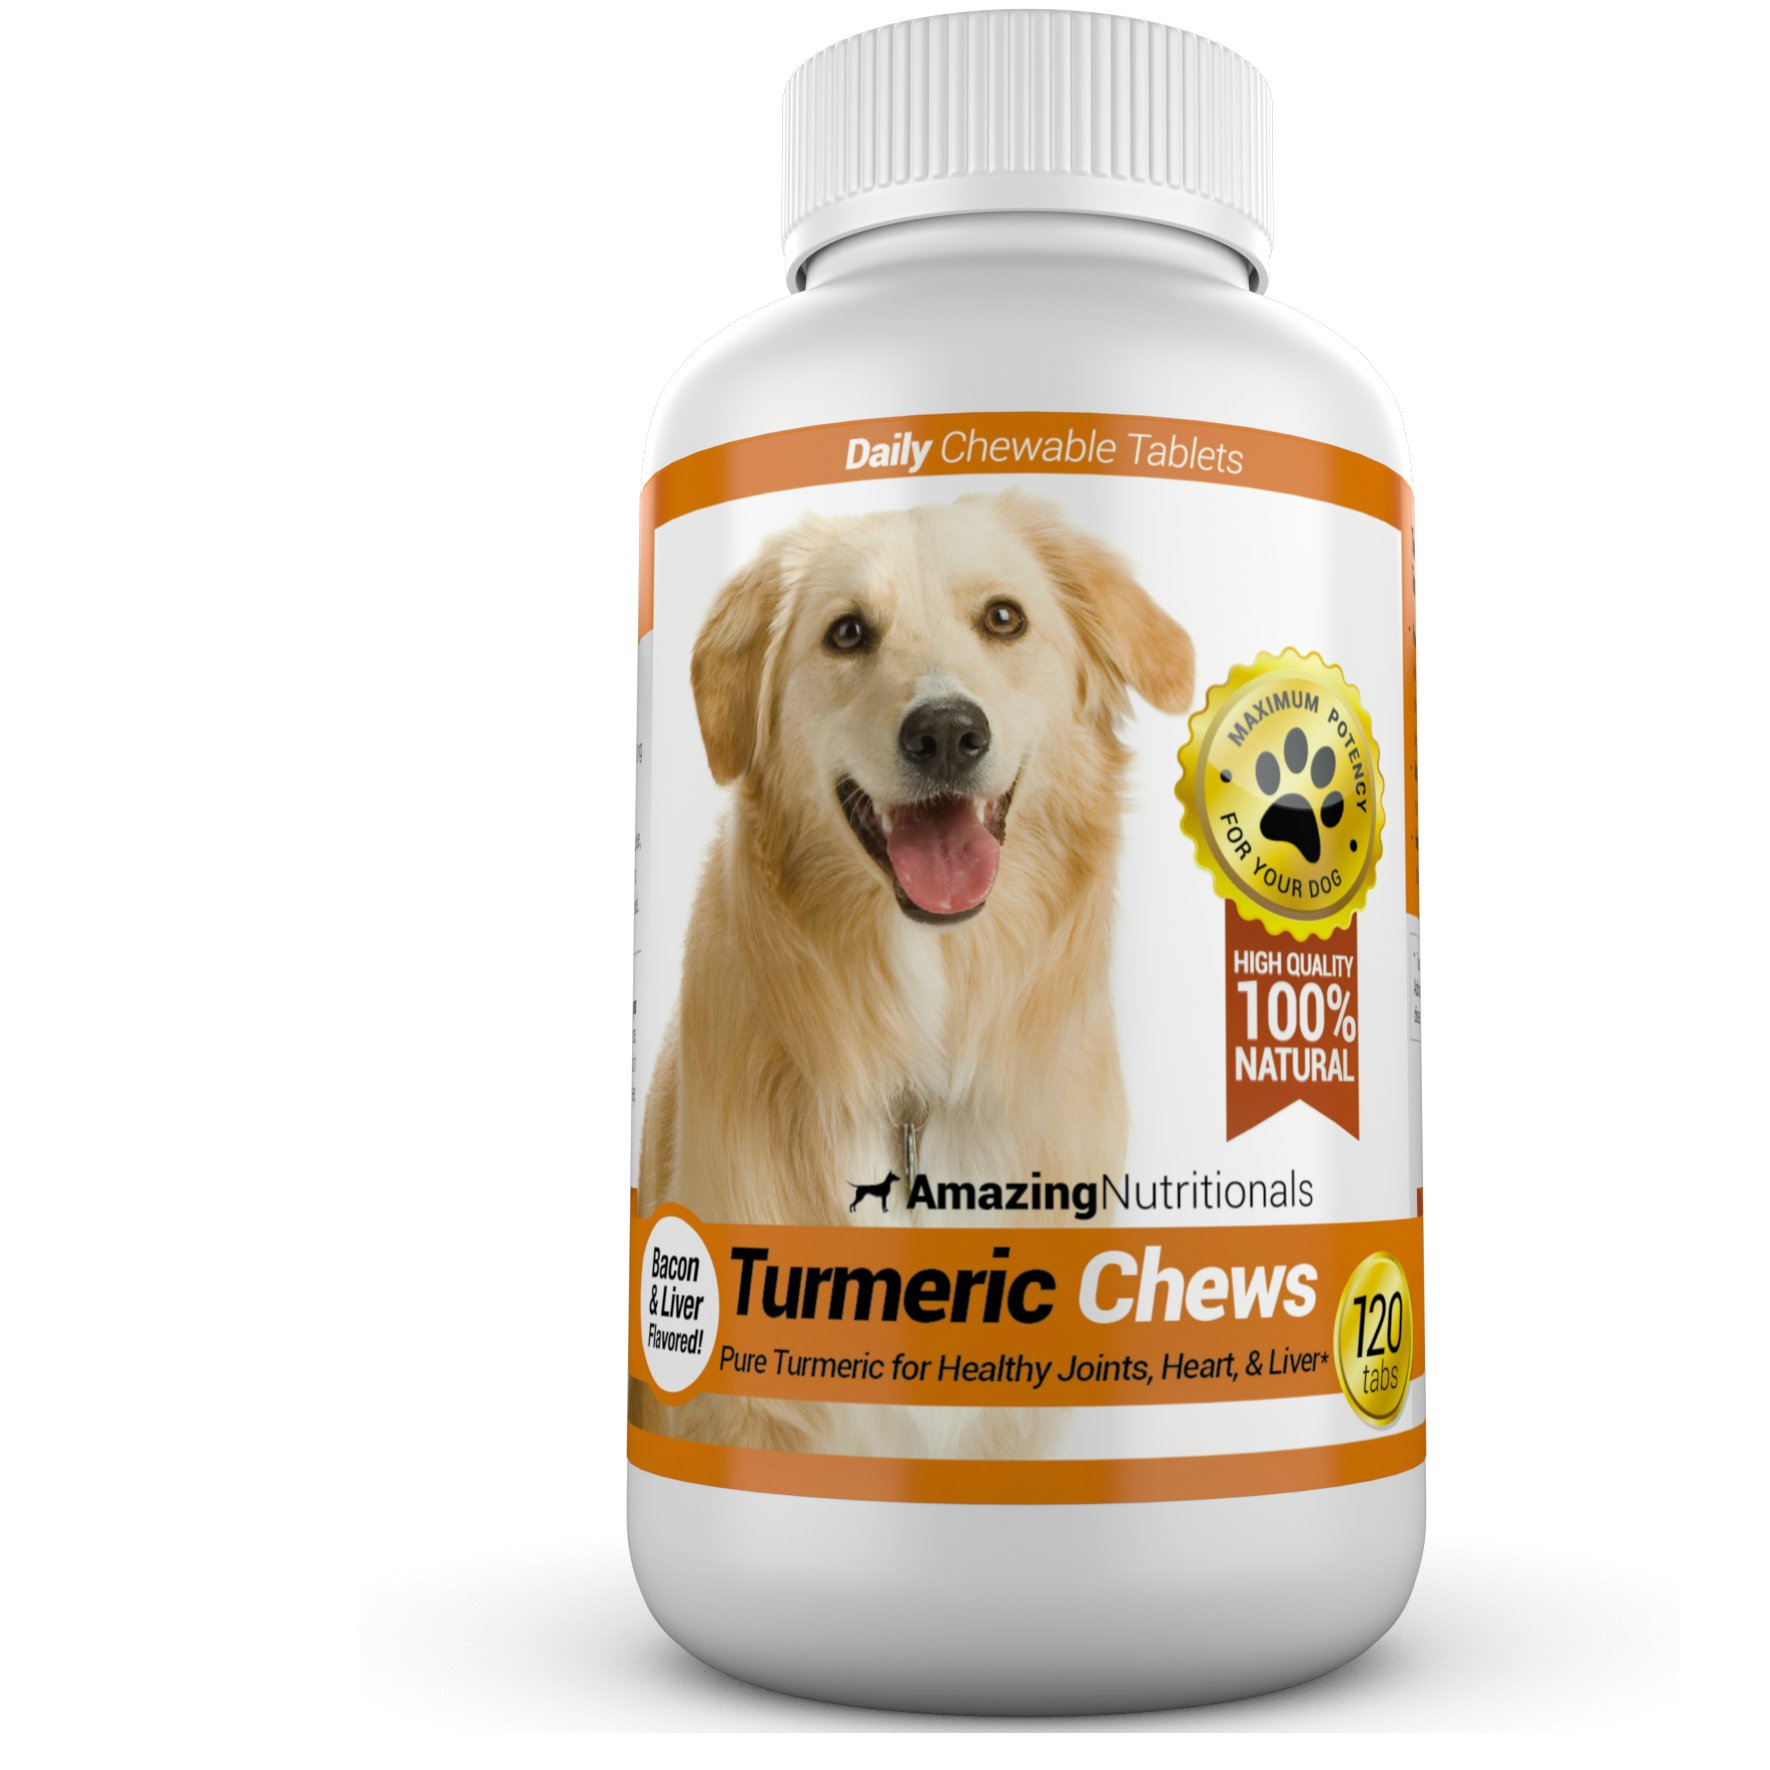 Amazing Turmeric for Dogs Curcumin Pet Antioxidant, Eliminates Joint Pain Inflammation, 120 Chews by Amazing Nutritionals